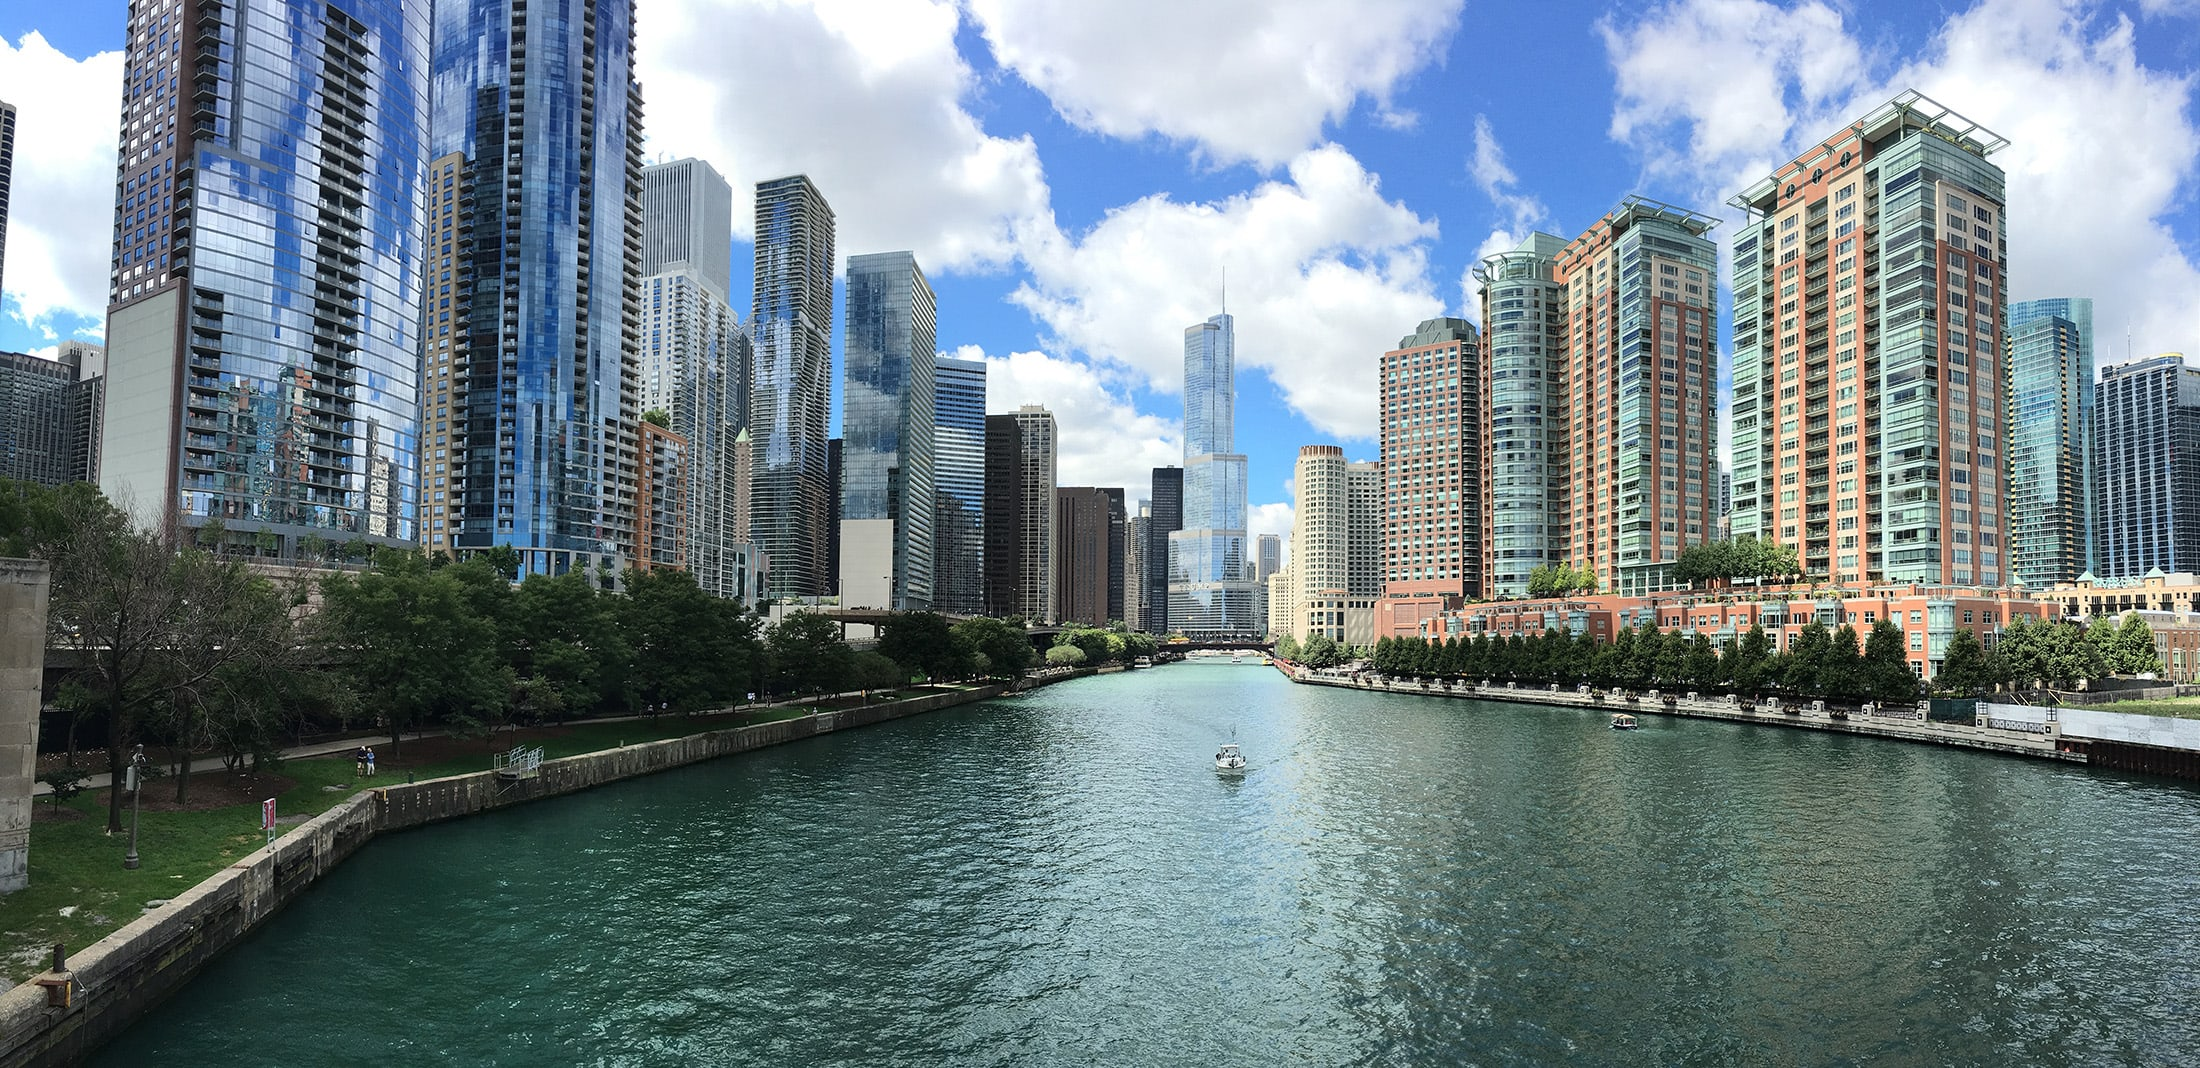 Chicago river background image